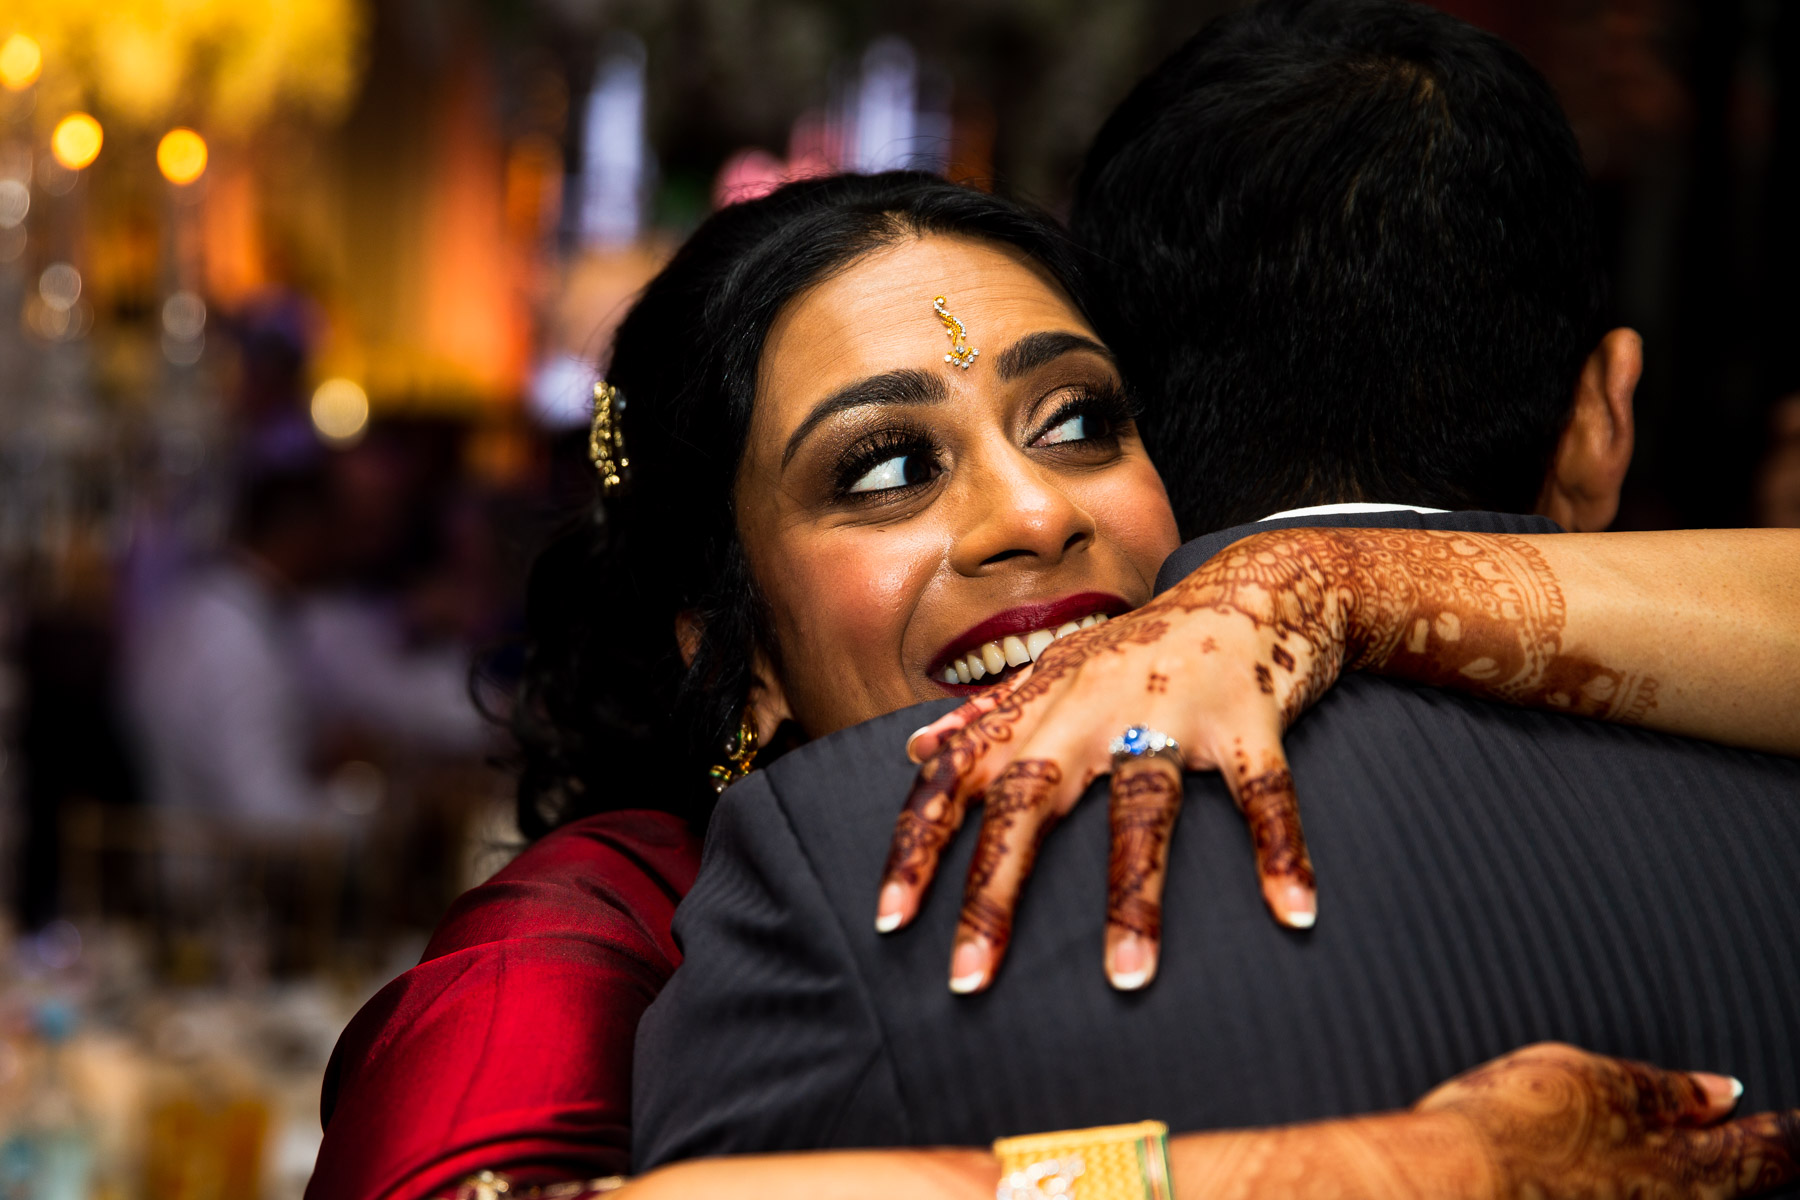 Intimate moment of wedding bride hugging guest